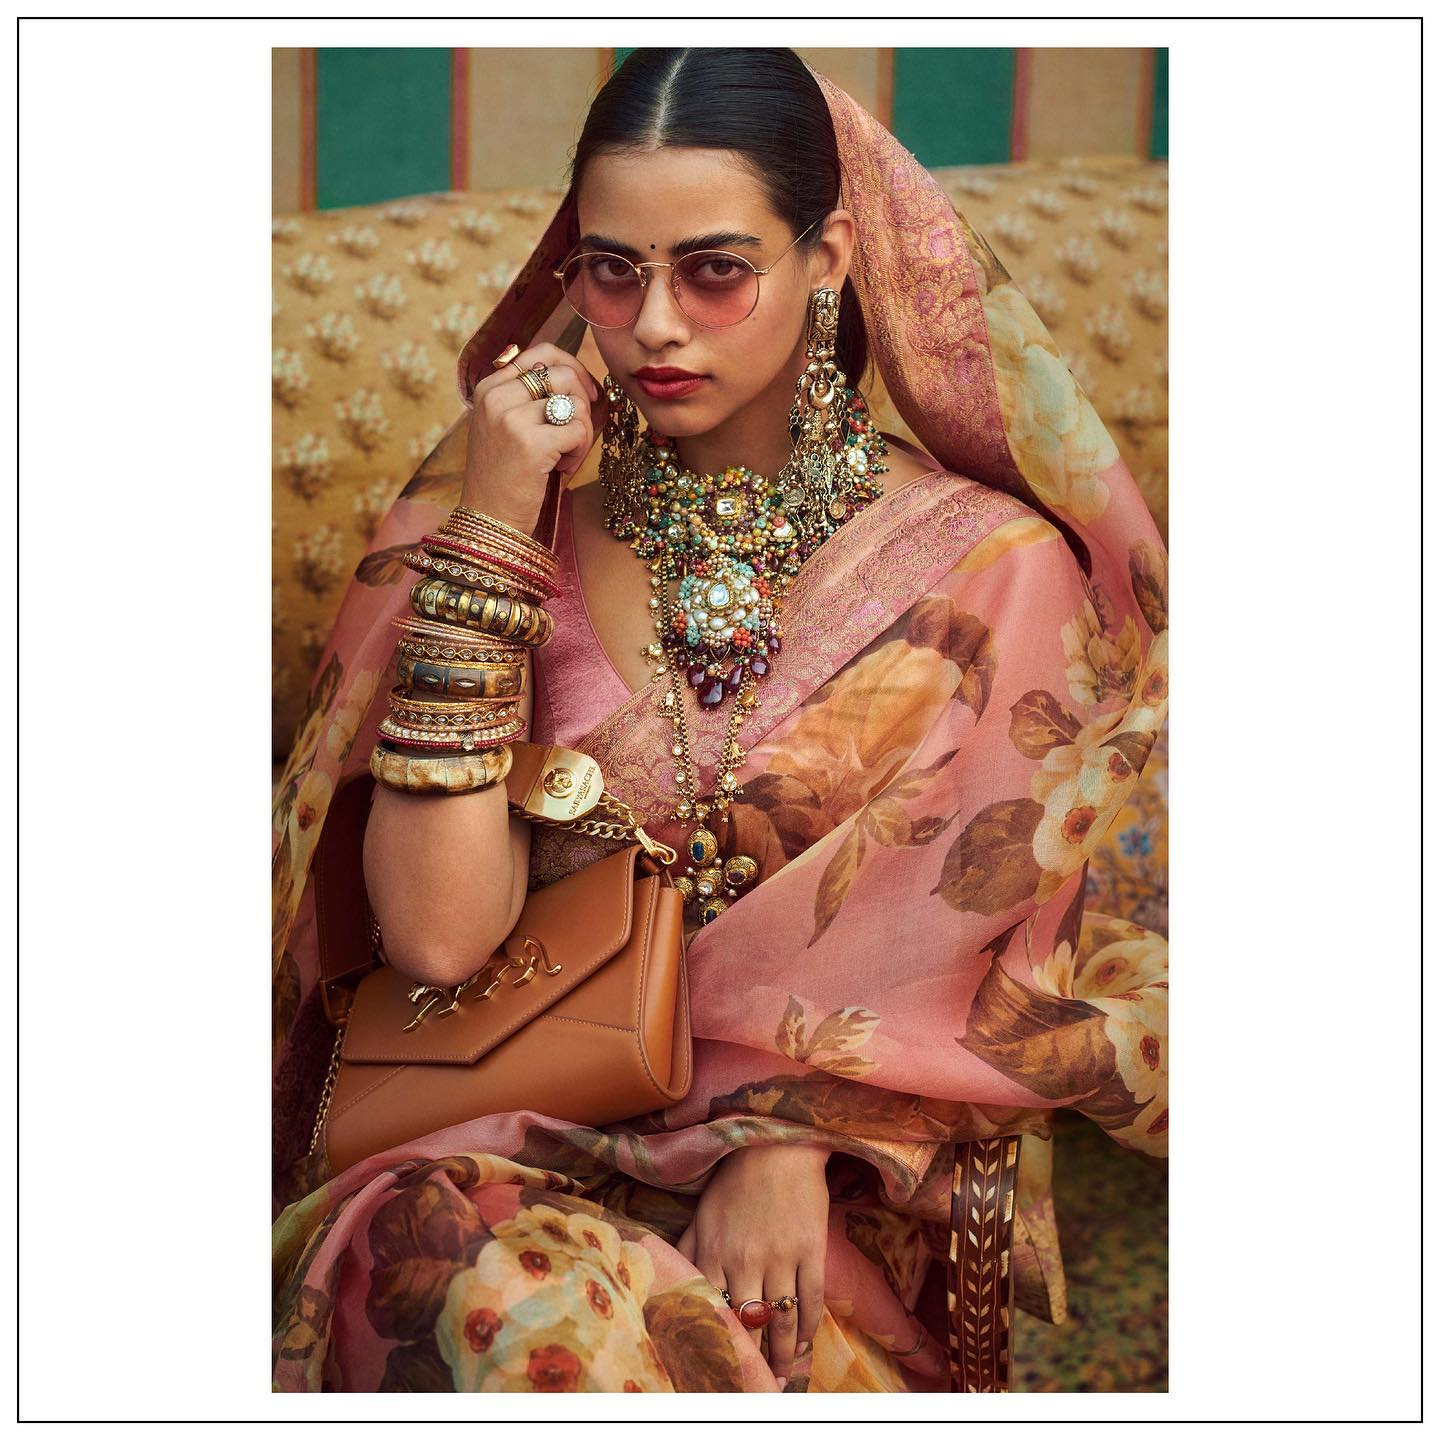 The Sabyasachi 2021 Collection. Sabyasachi floral saree. For all product related queries please email at customerservice@sabyasachi.com or contact retail stores directly. 2021-09-27